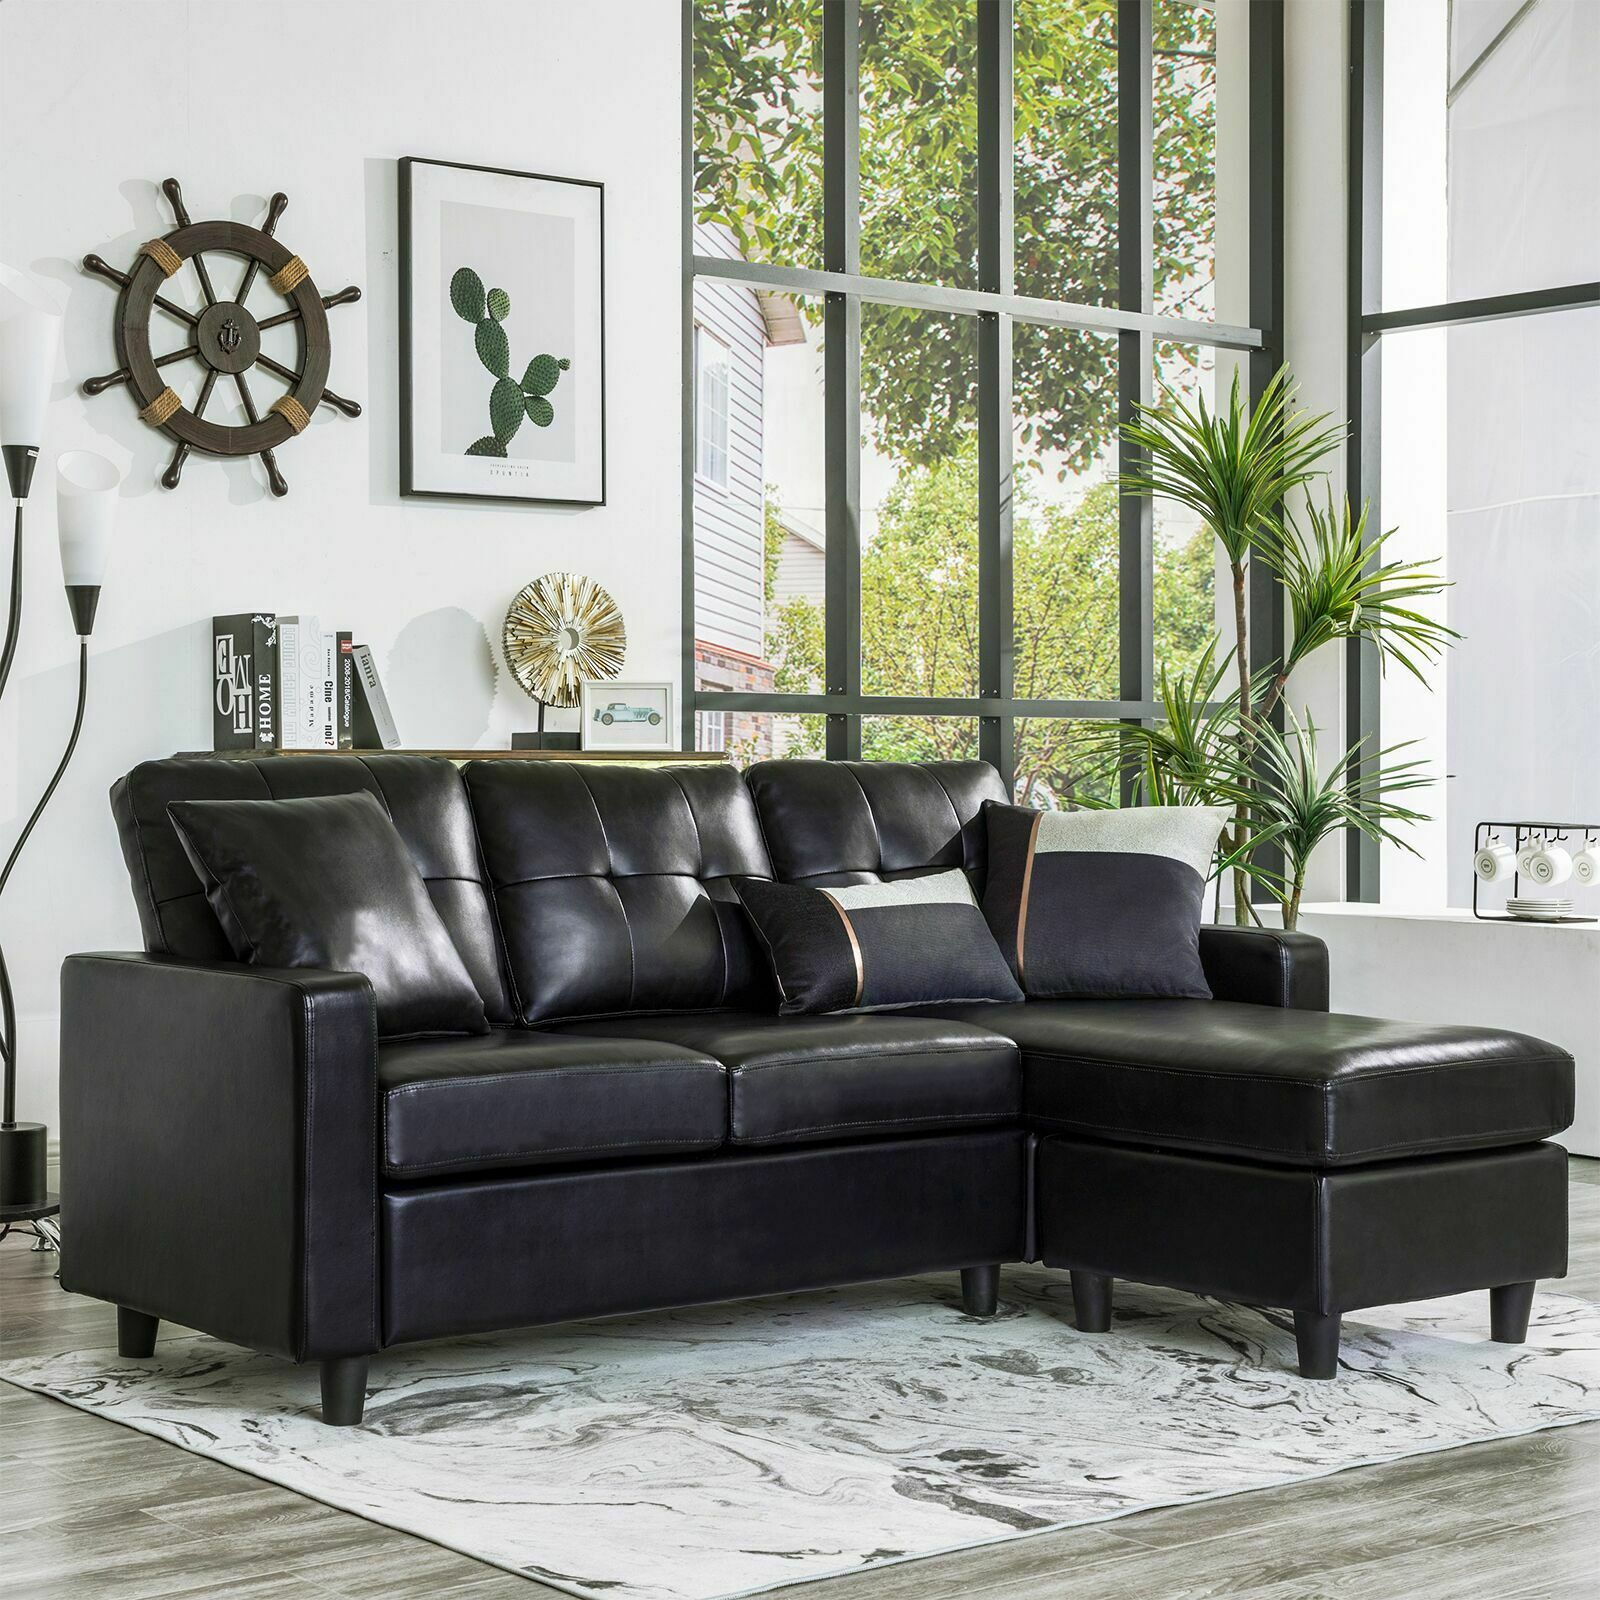 Black Faux Leather Sectional Sofa L Shaped Couch W Reversible Chaise Small Space